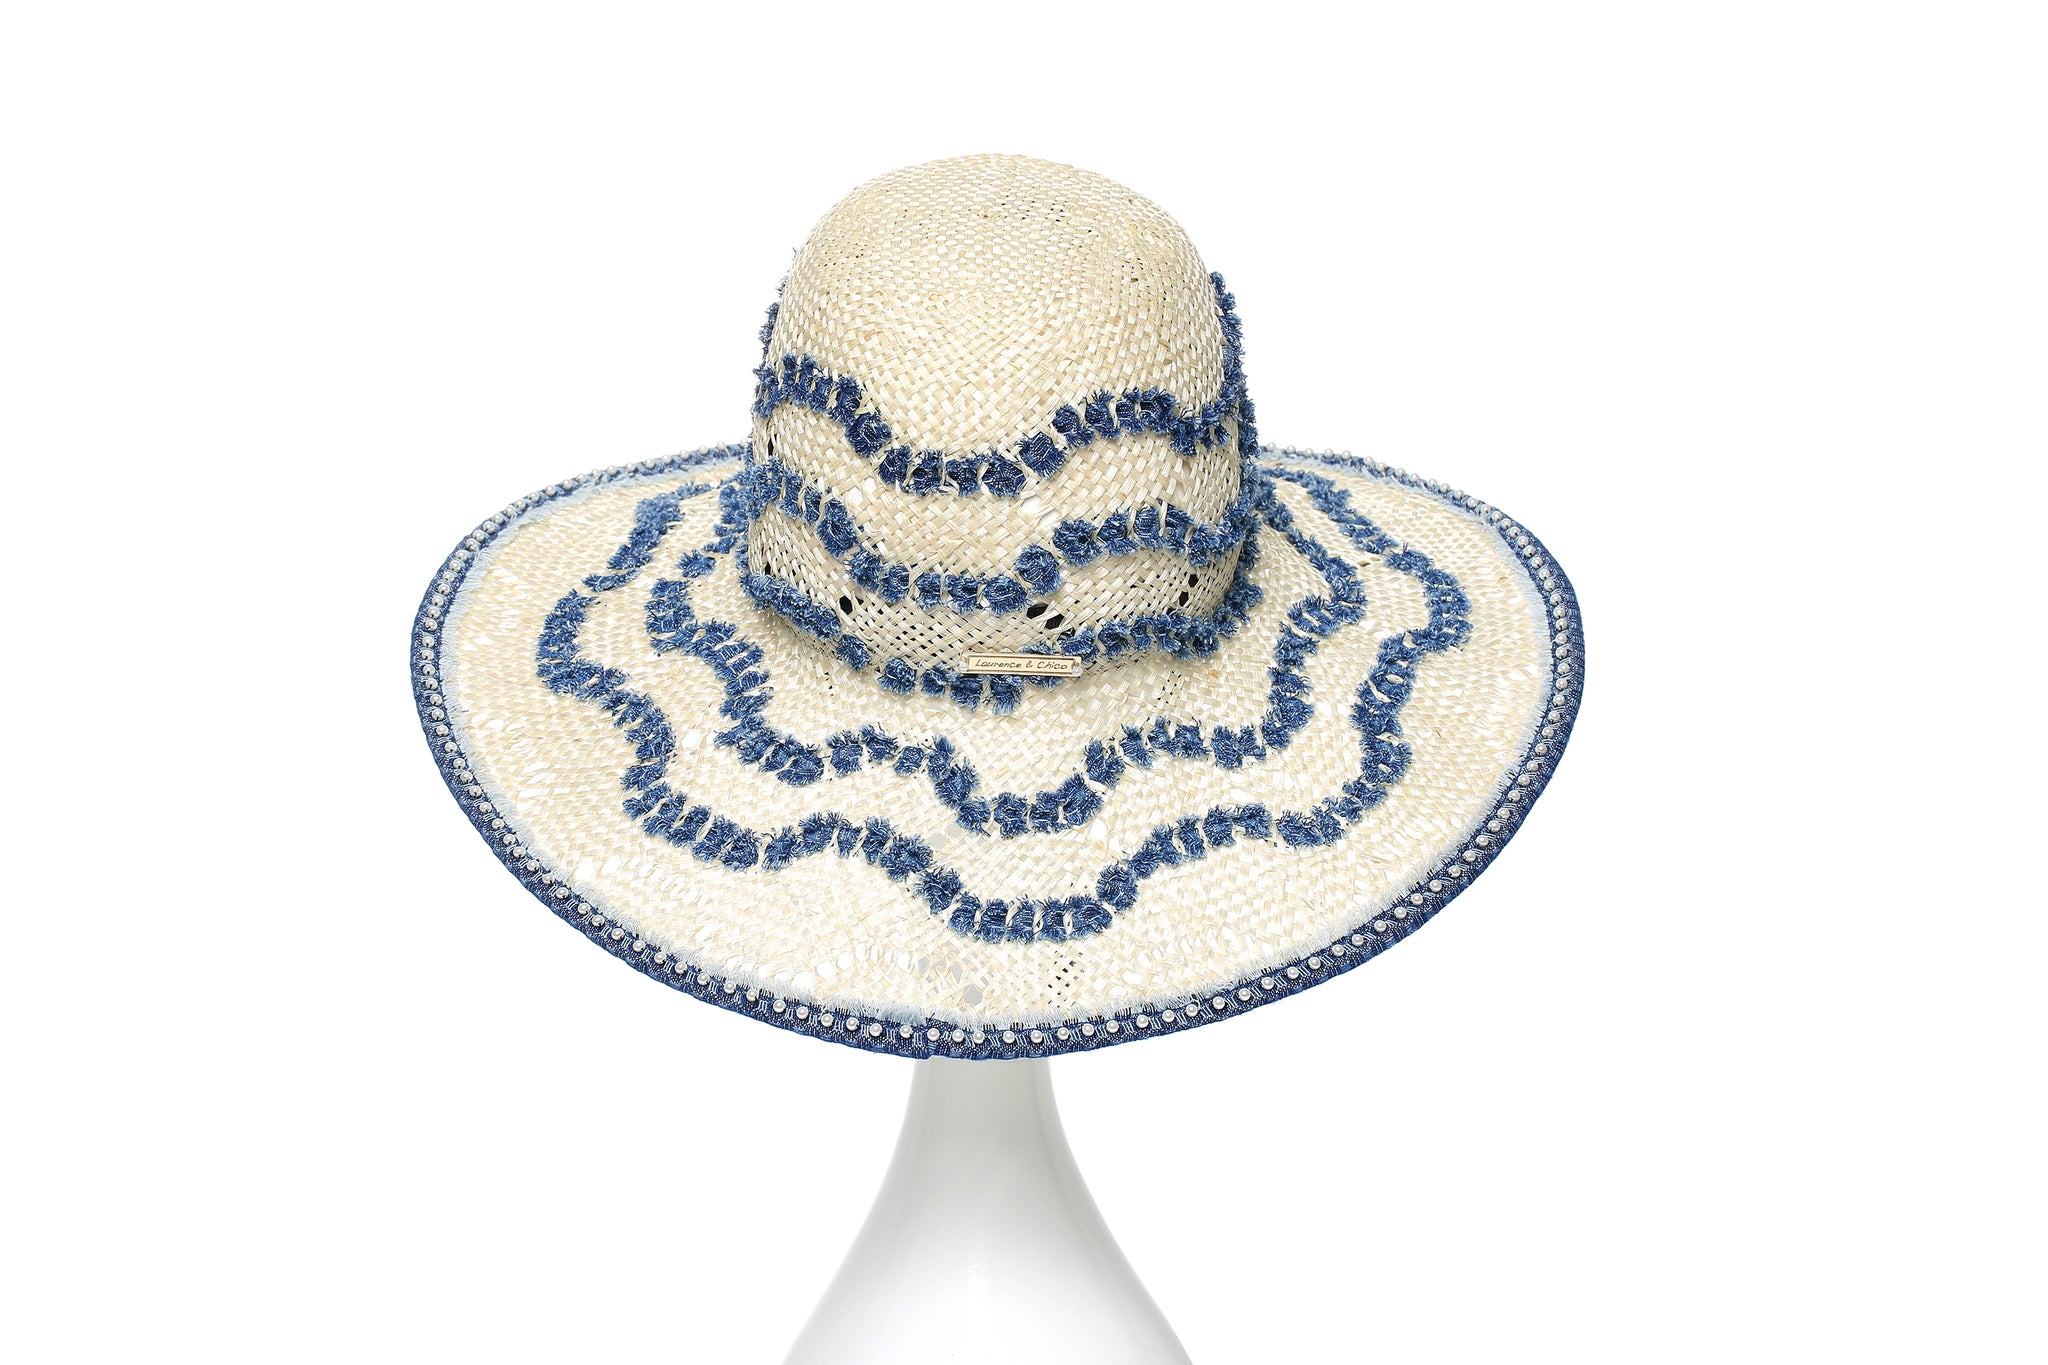 Hand Woven Denim Straw Hat, White